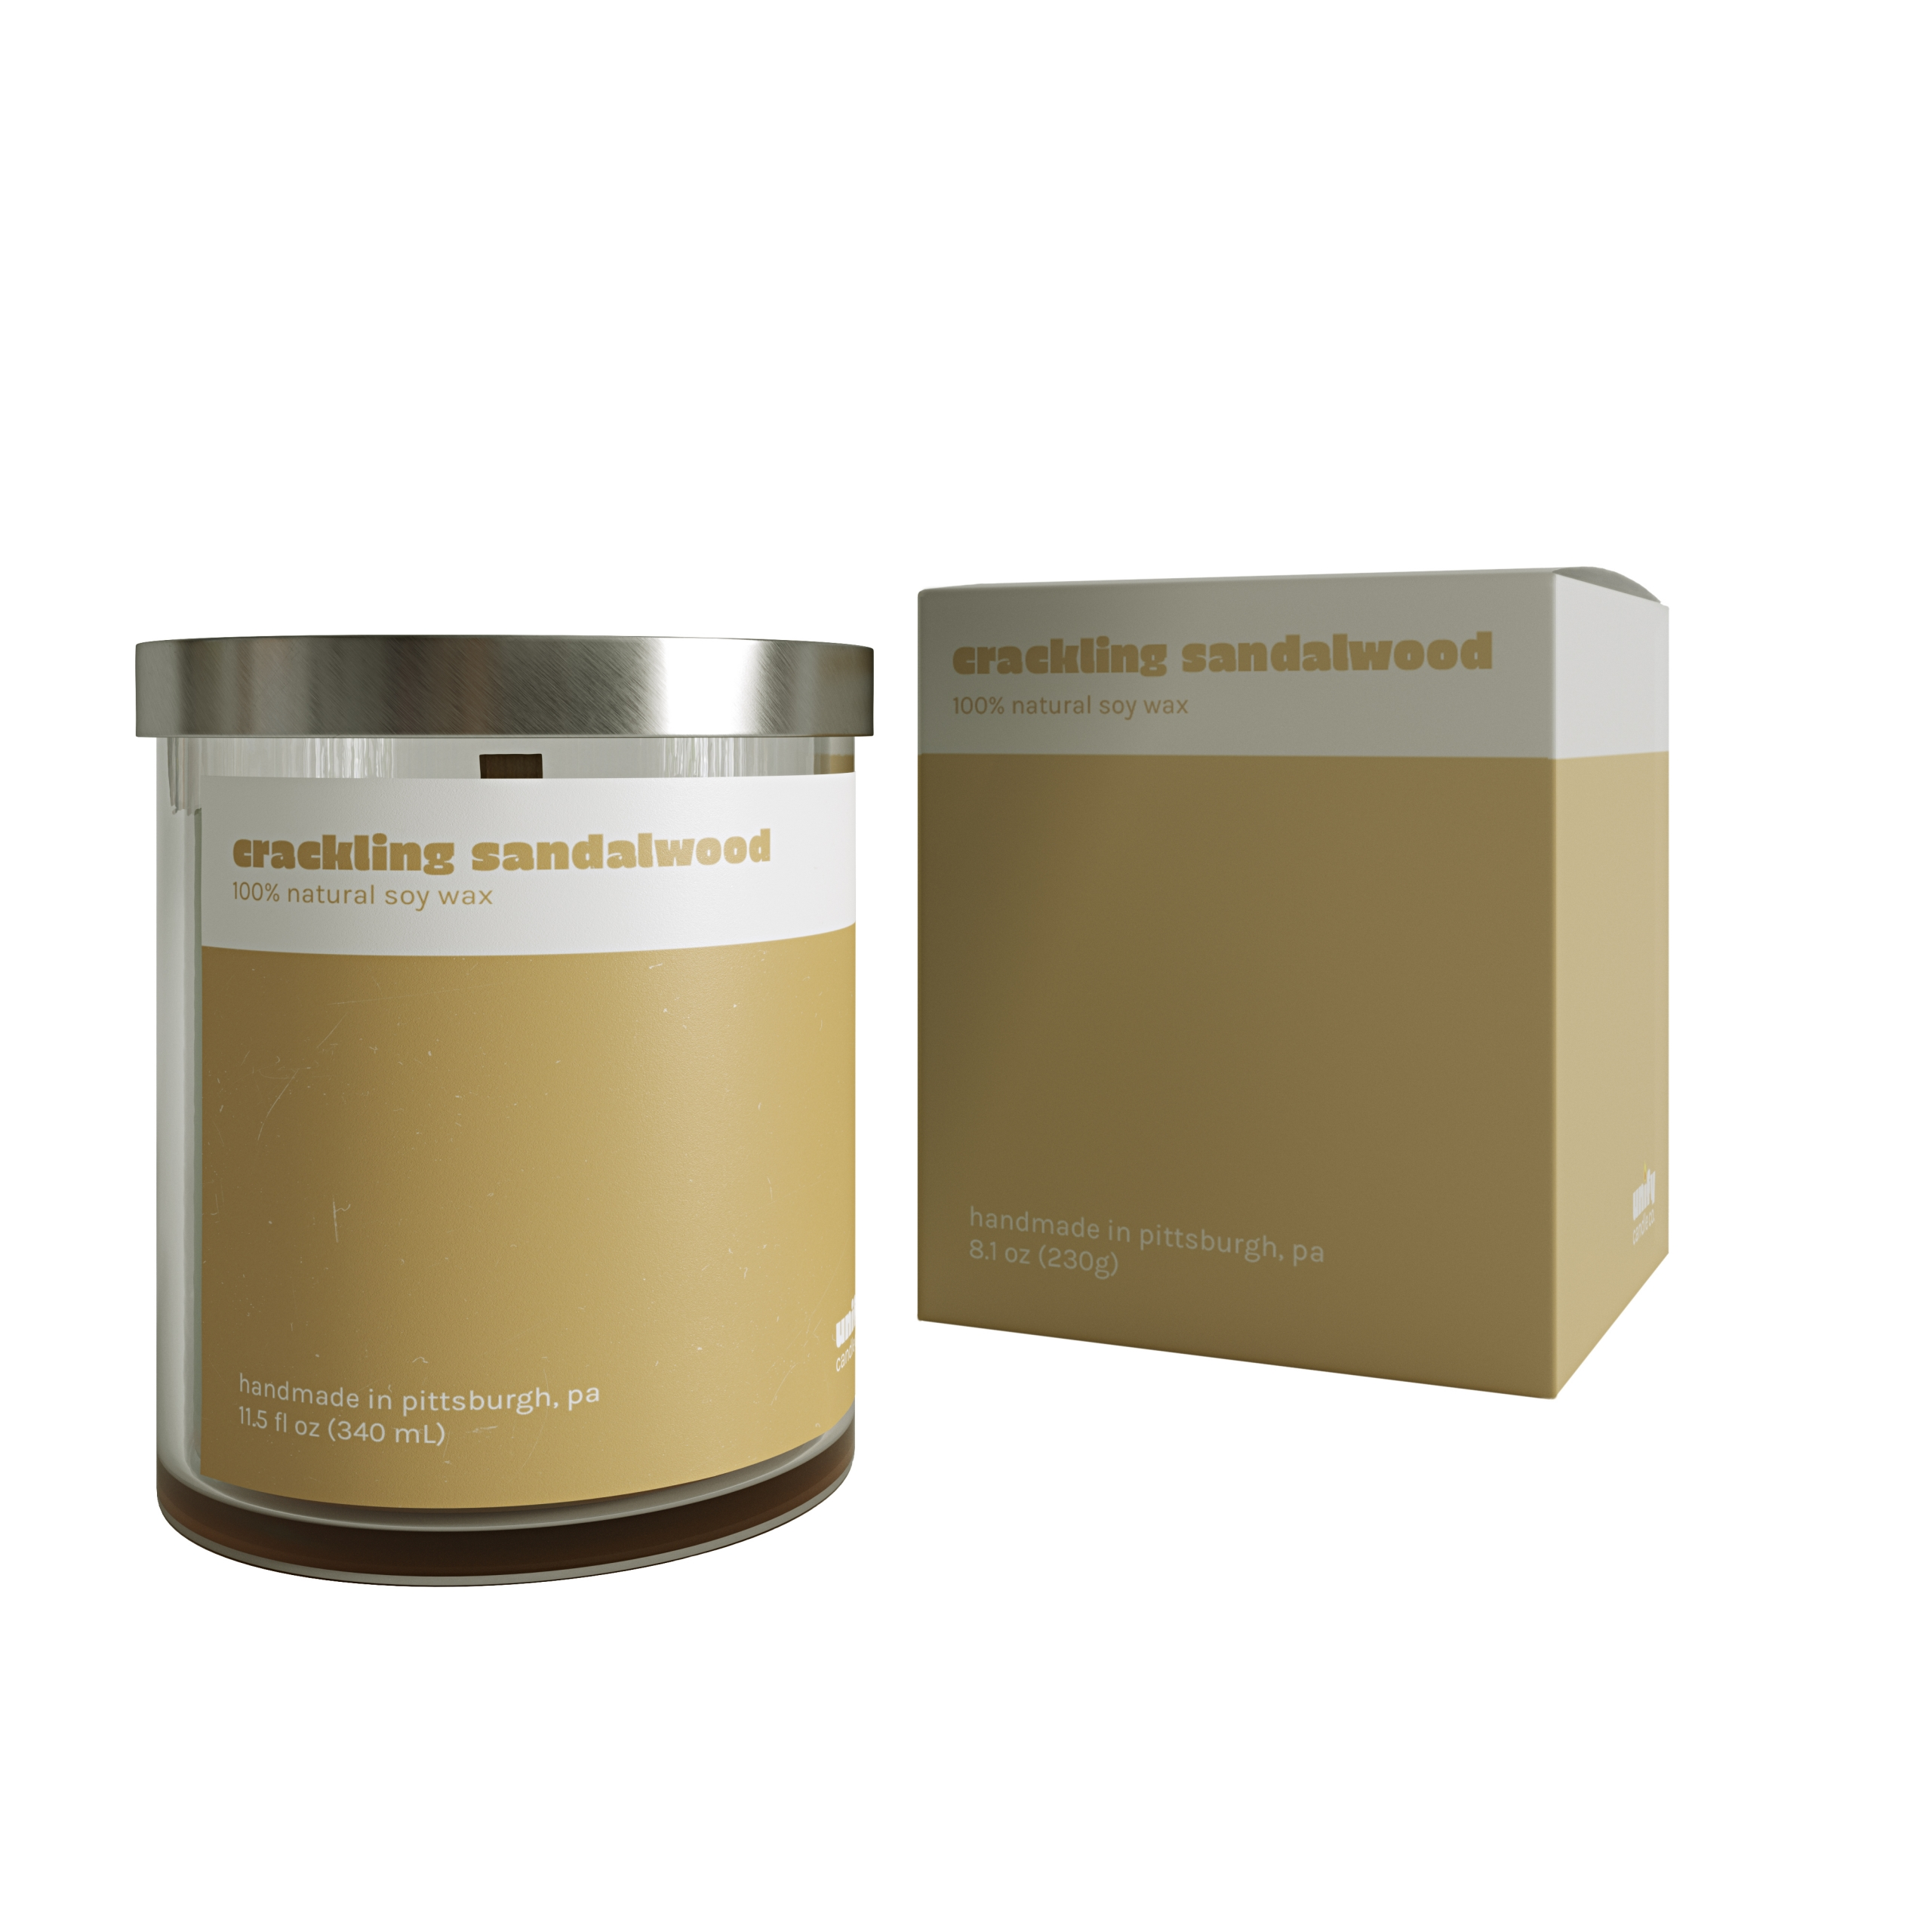 White Background Picture for a Cracking Sandalwood Candle